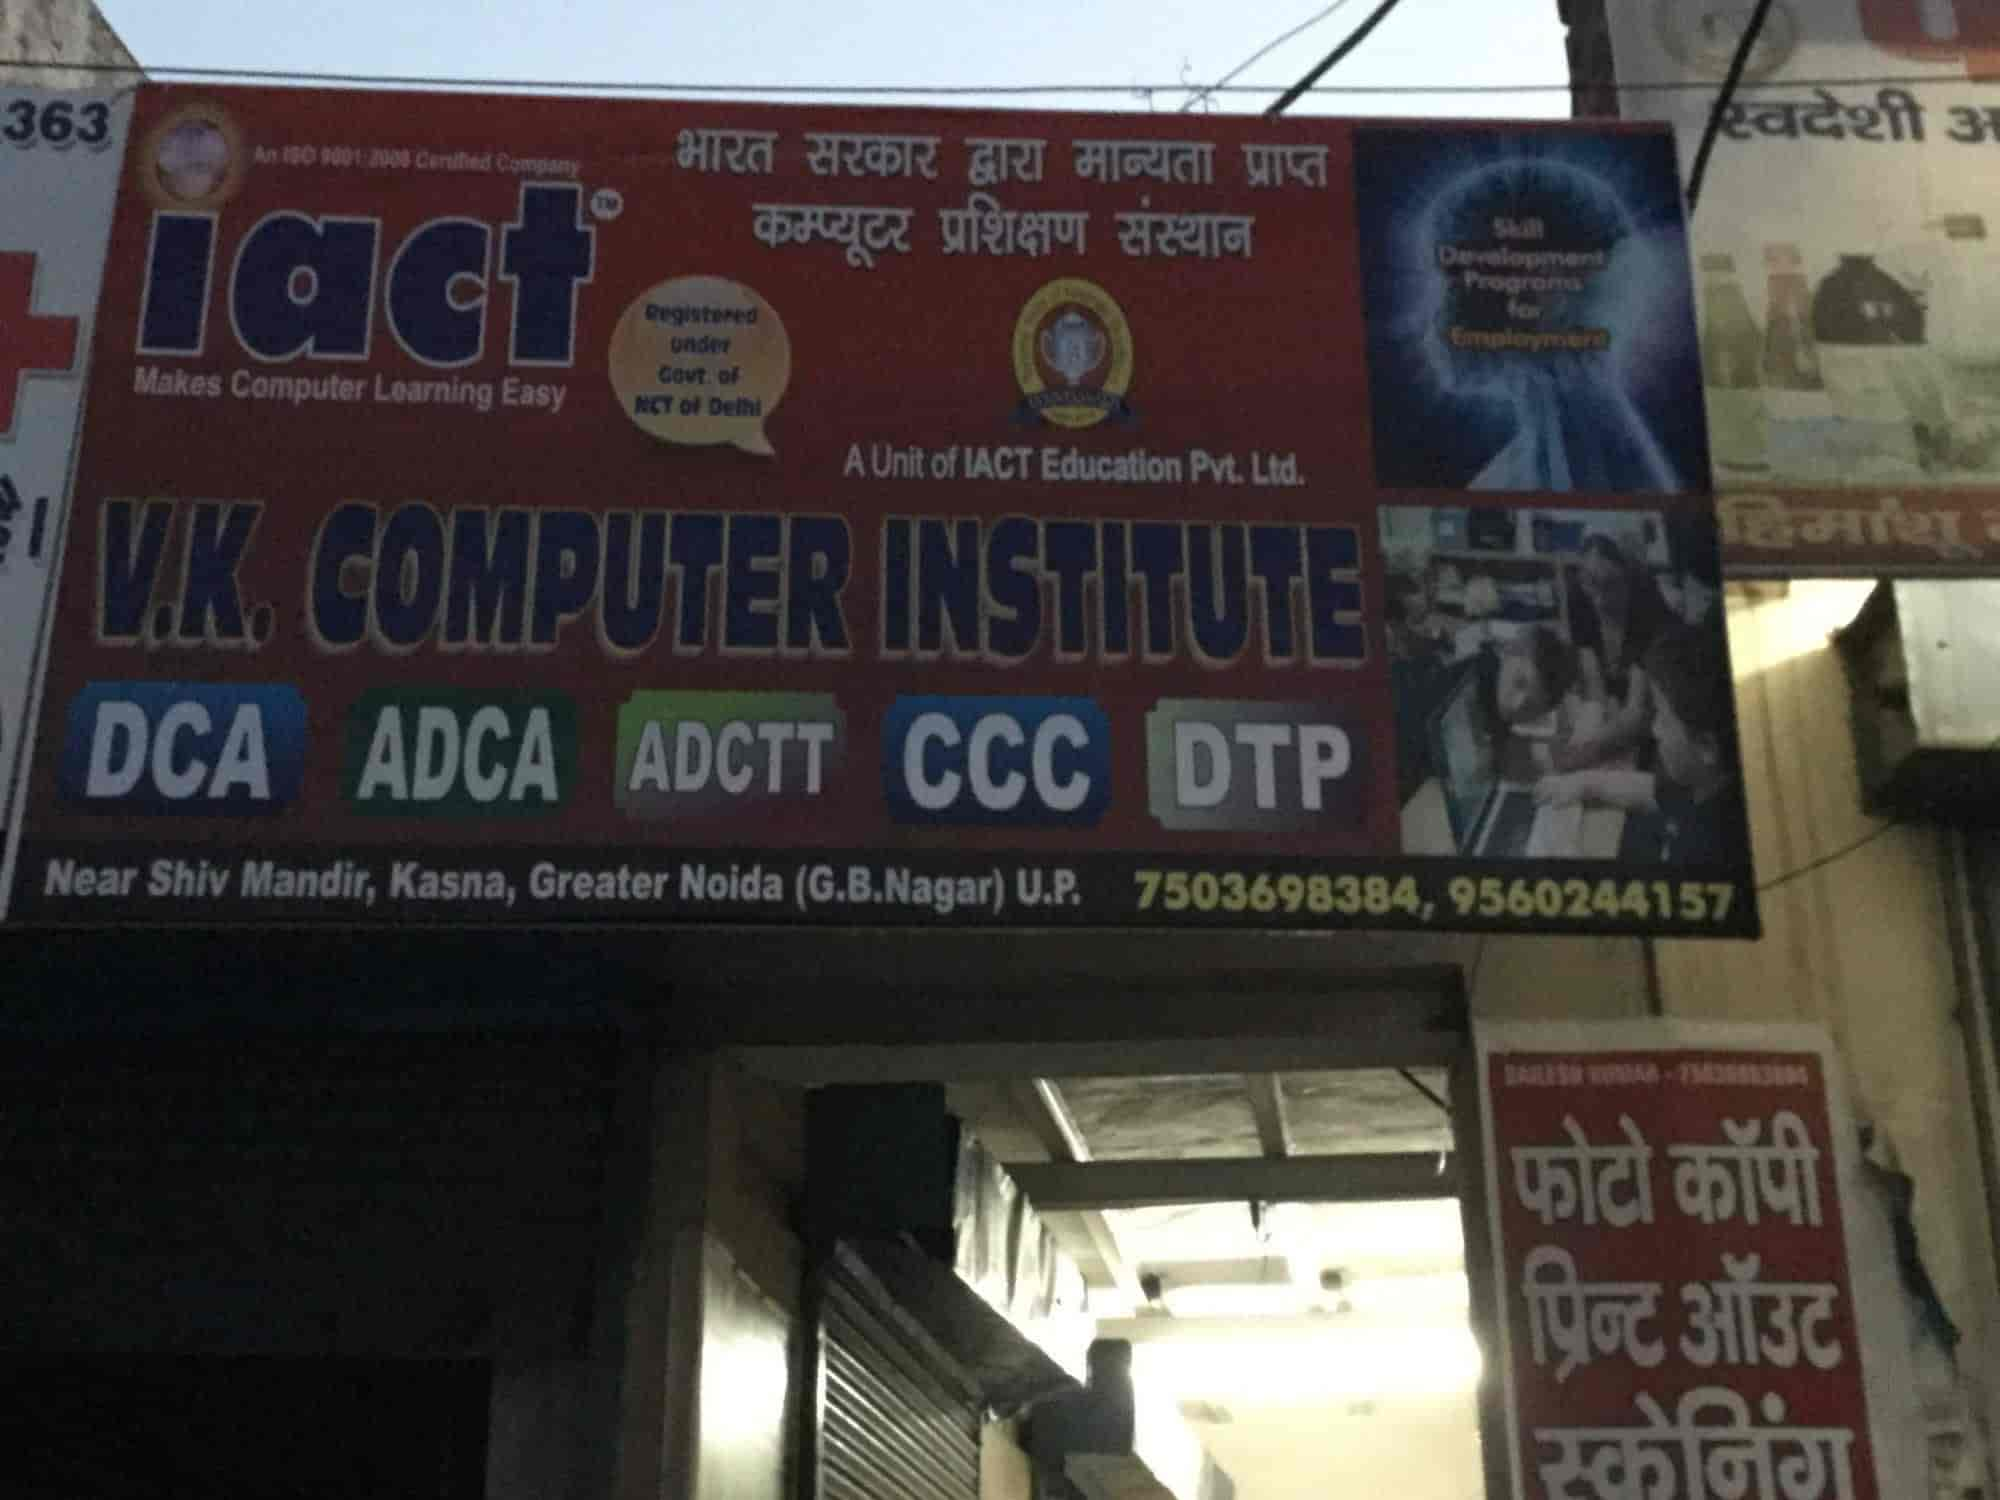 V k computer Institute, Kasna - Tally Training Institutes in